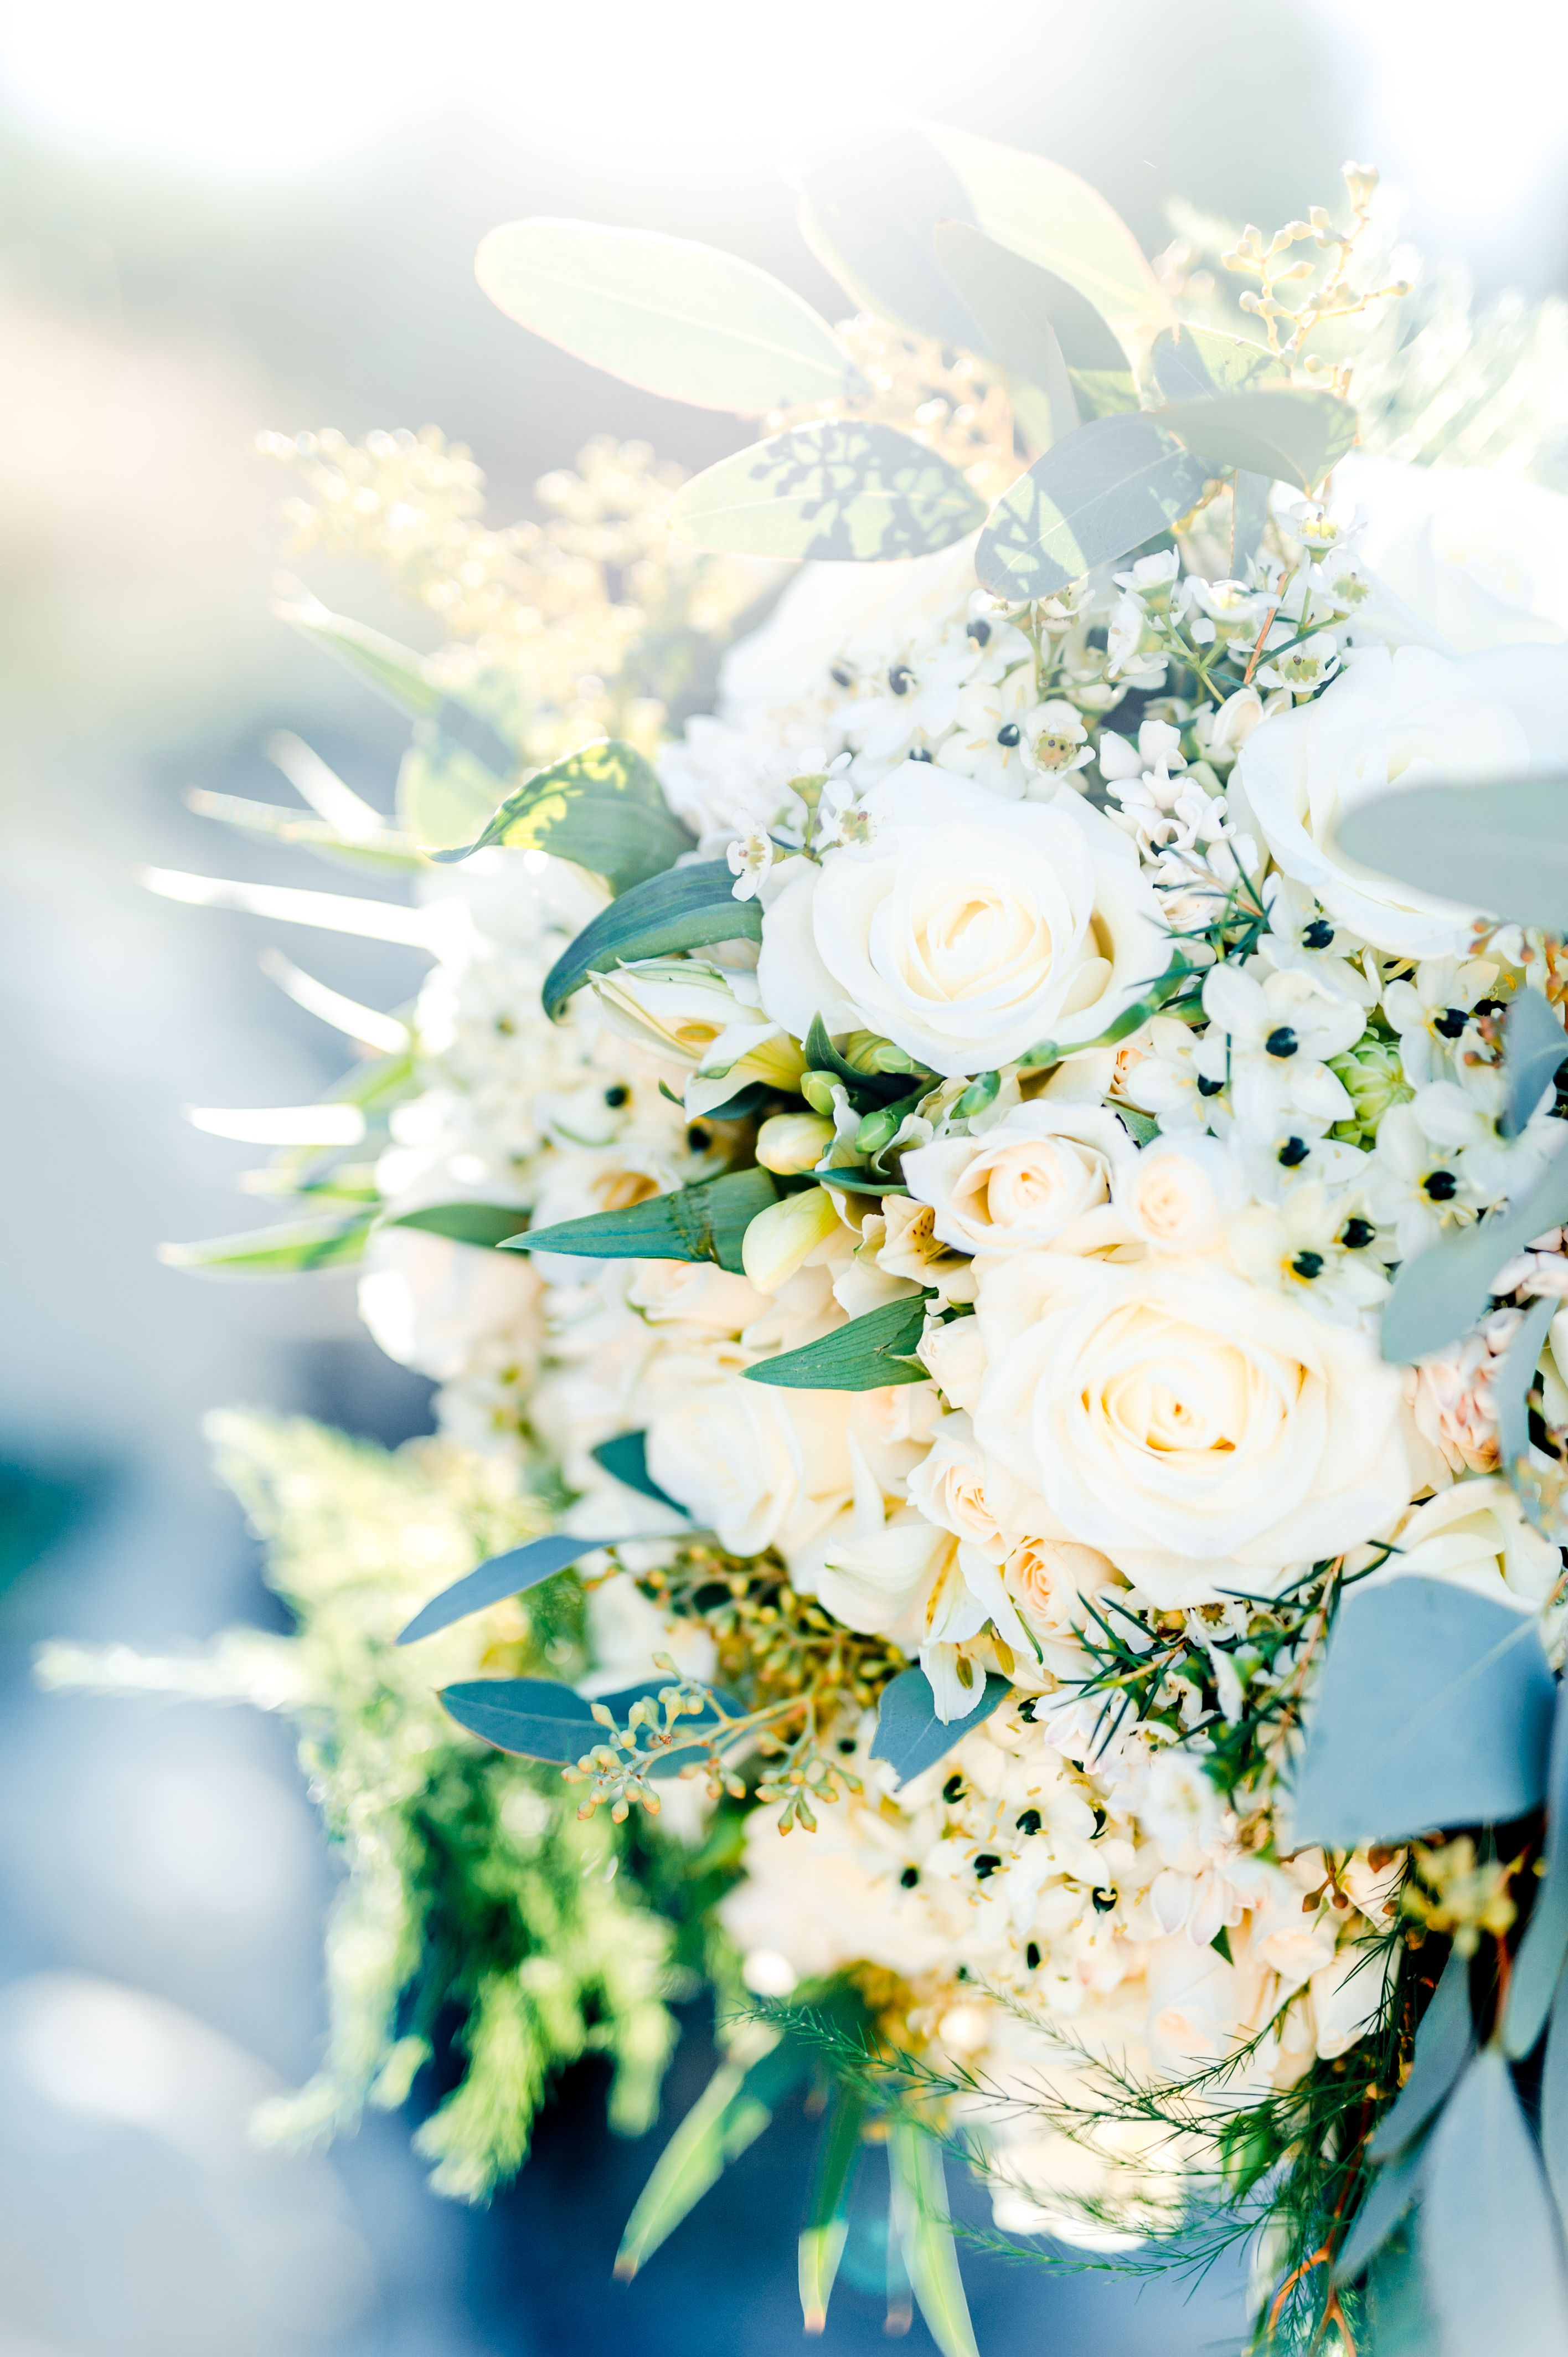 Bridal Bouquet - Wedding in South of France at Les Pêcheurs - Cap d'Antibes - Wedding Photographer #bridalbouquet #weddingphotography #lespecheurs #mariage #photographemariage #capdantibes #bouquetdemariée #fleurs #photographedemariage